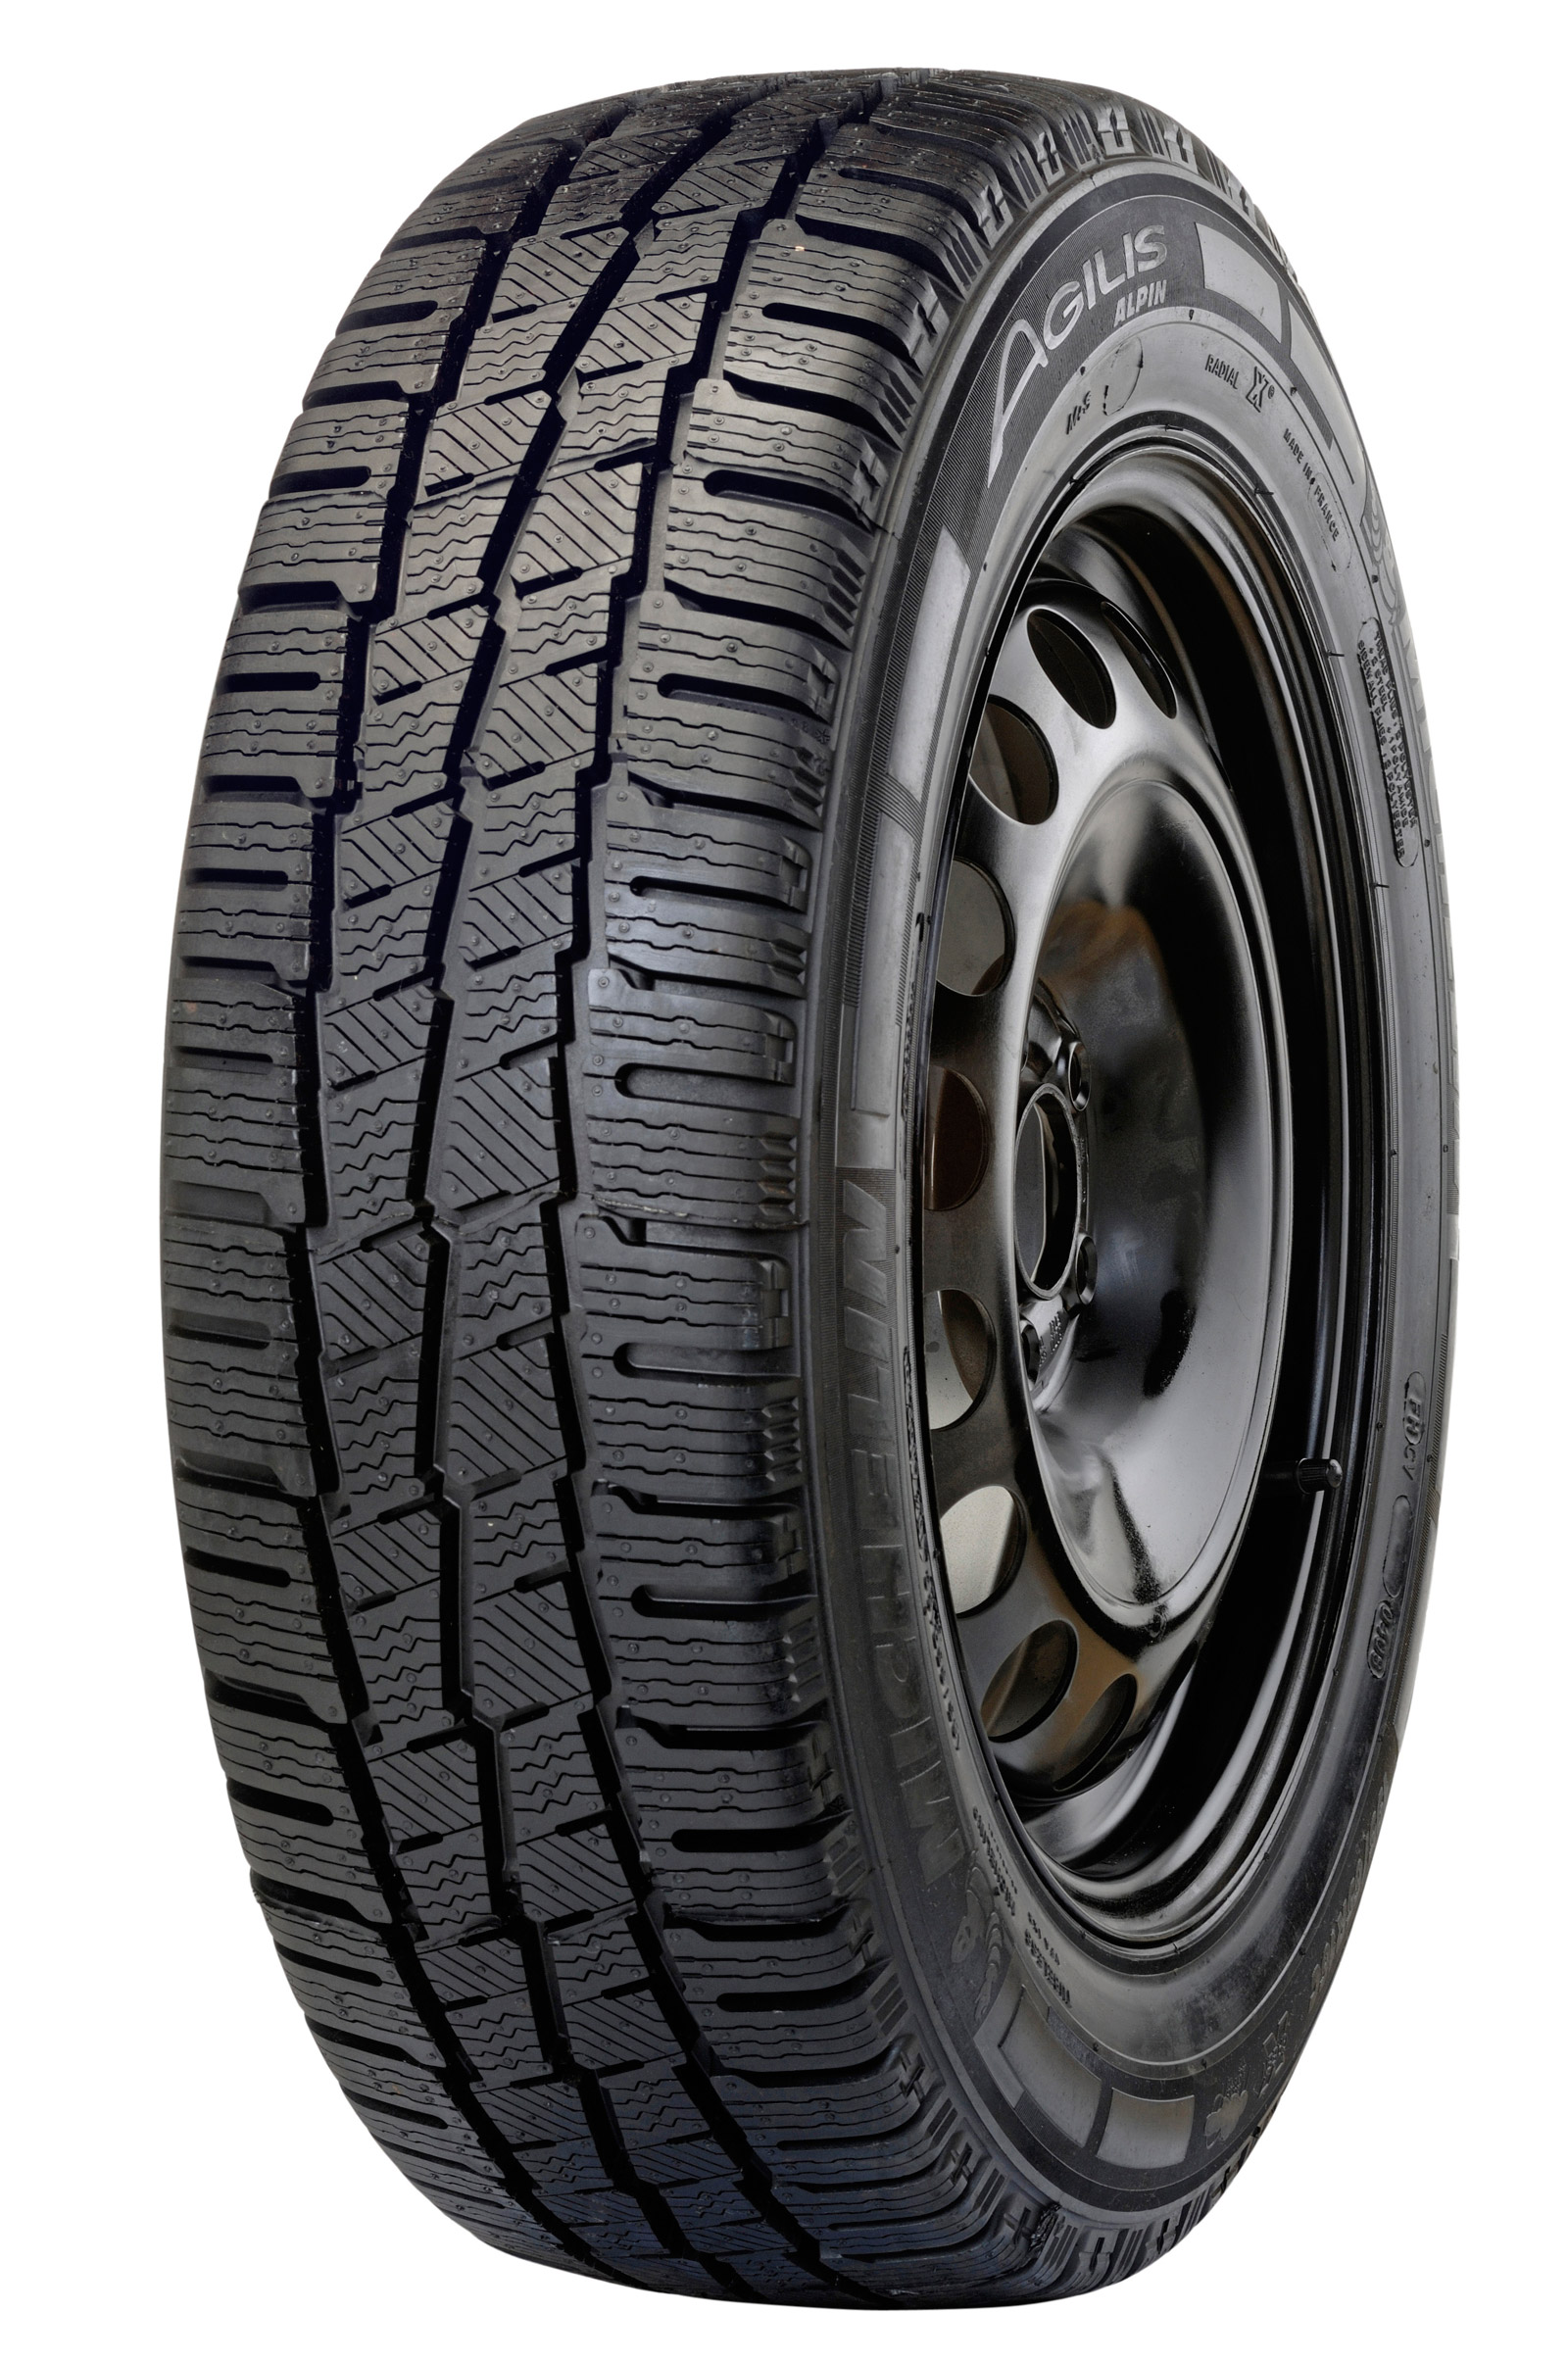 Зимняя шина Michelin Agilis Alpin 225/65 R16 112/110R